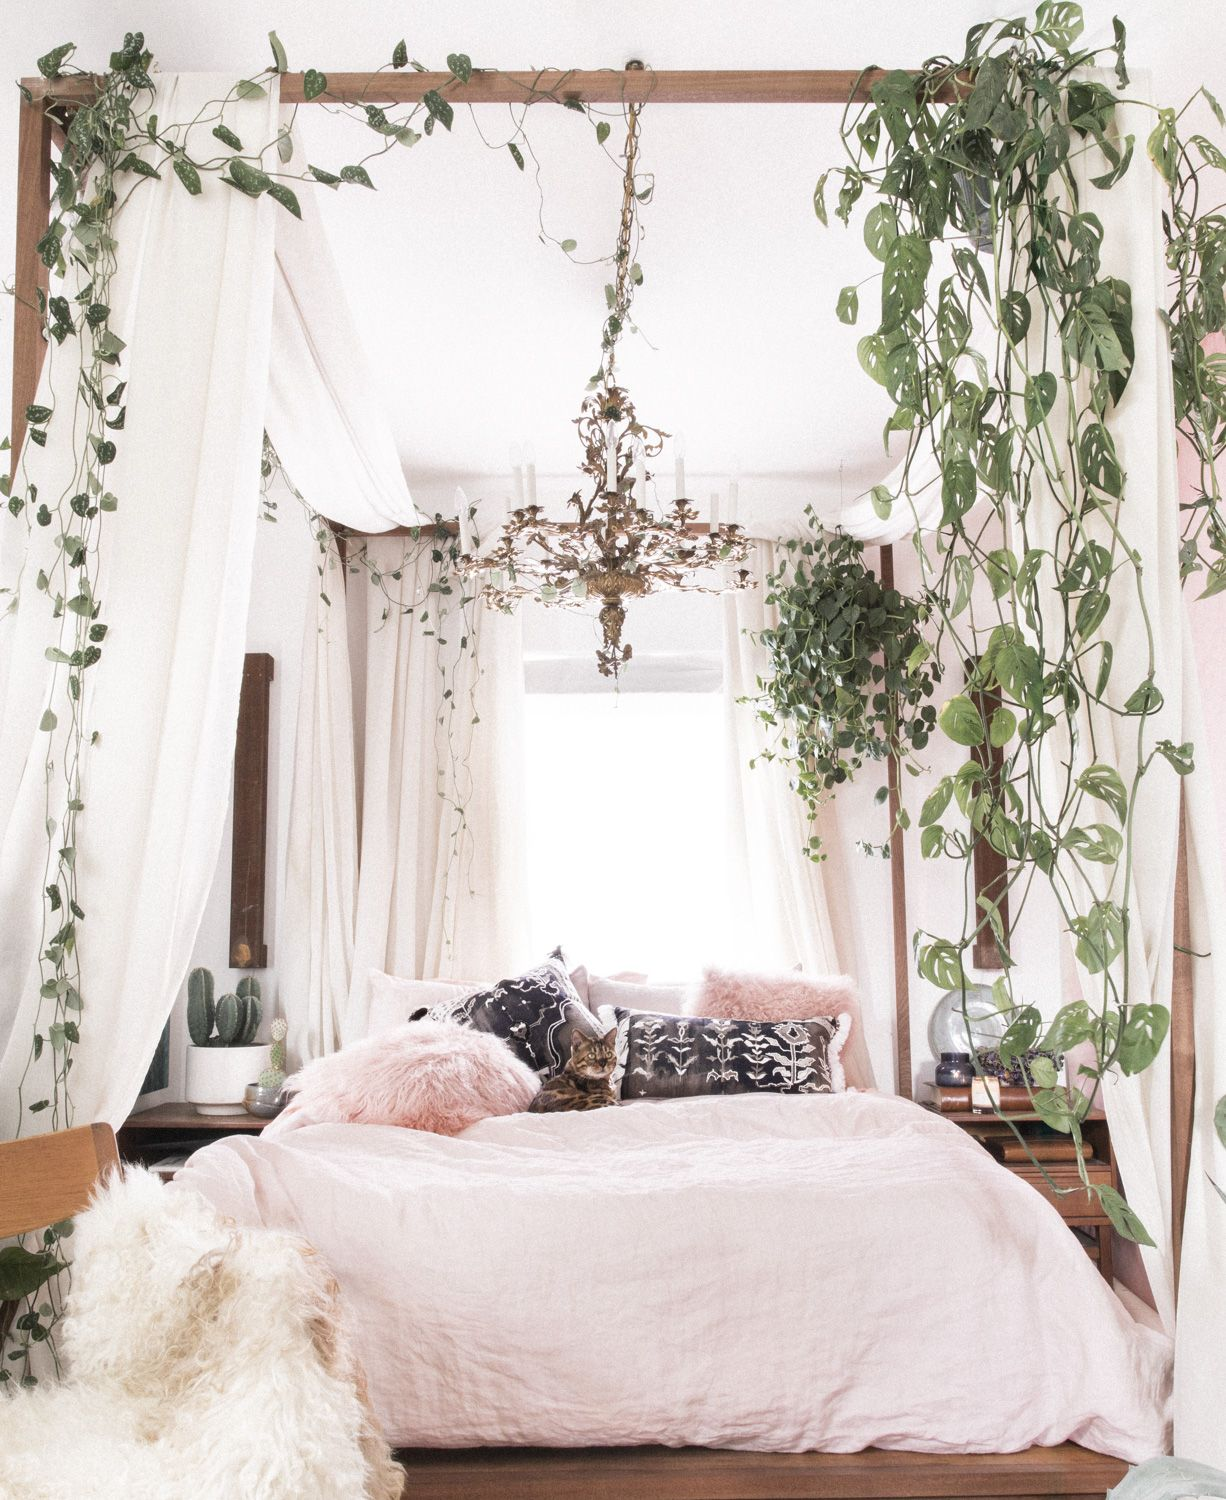 Small E Decor Tips From A 650 Square Foot Bohemian Apartment Bedroom